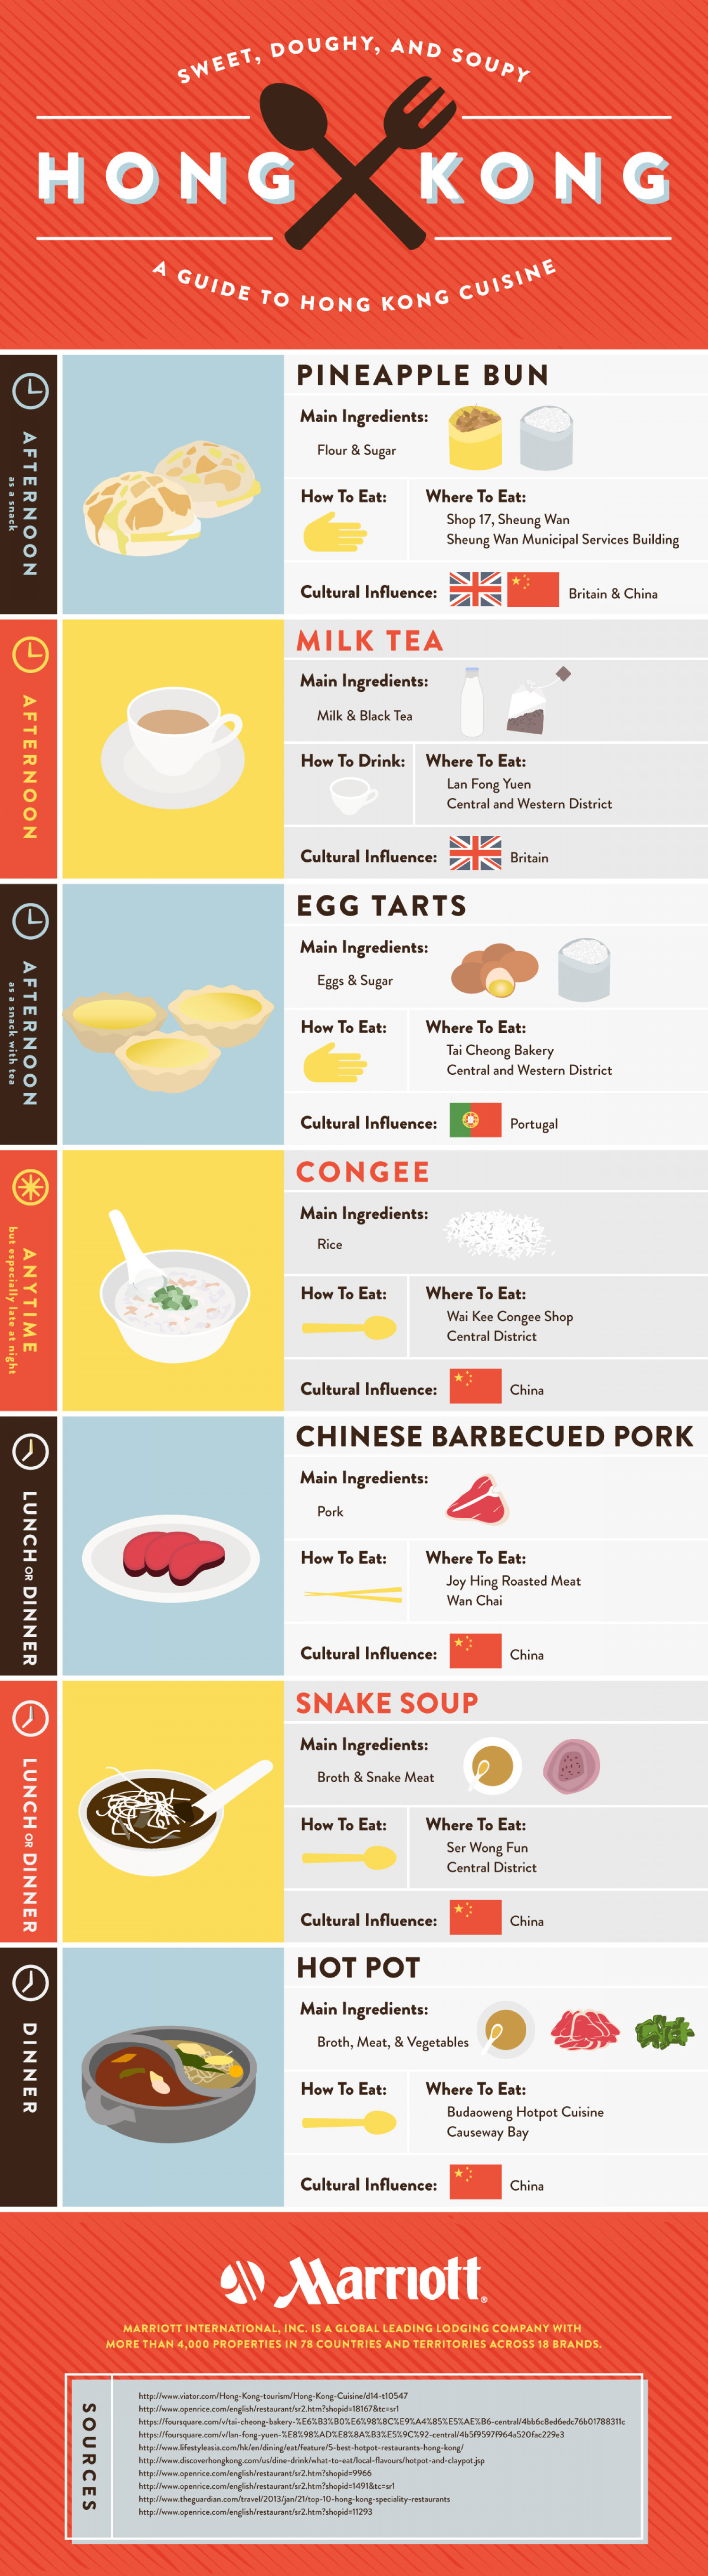 Where to Find Local Cuisine in Hong Kong Infographic